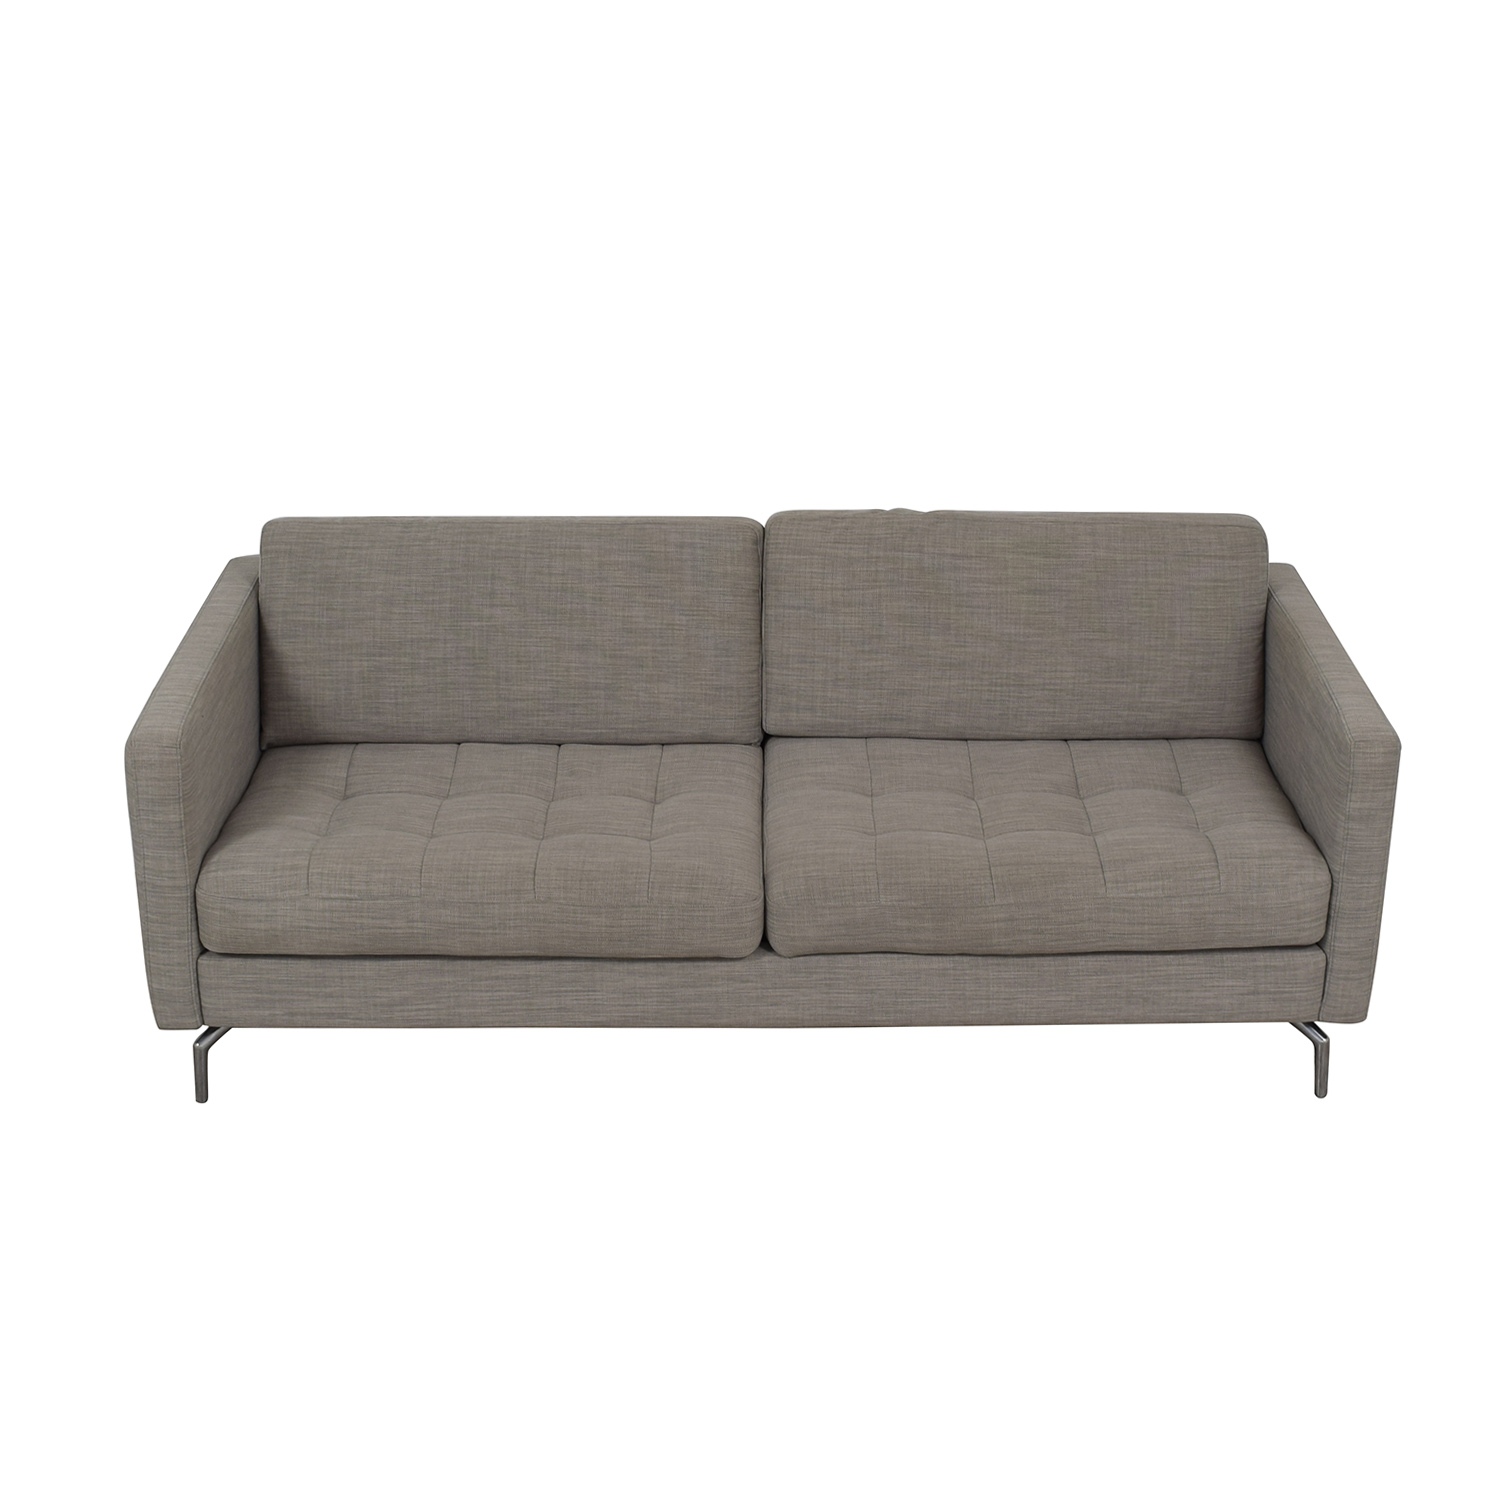 BoConcept BoConcept Osaka Grey Tufted Two-Cushion Sofa price